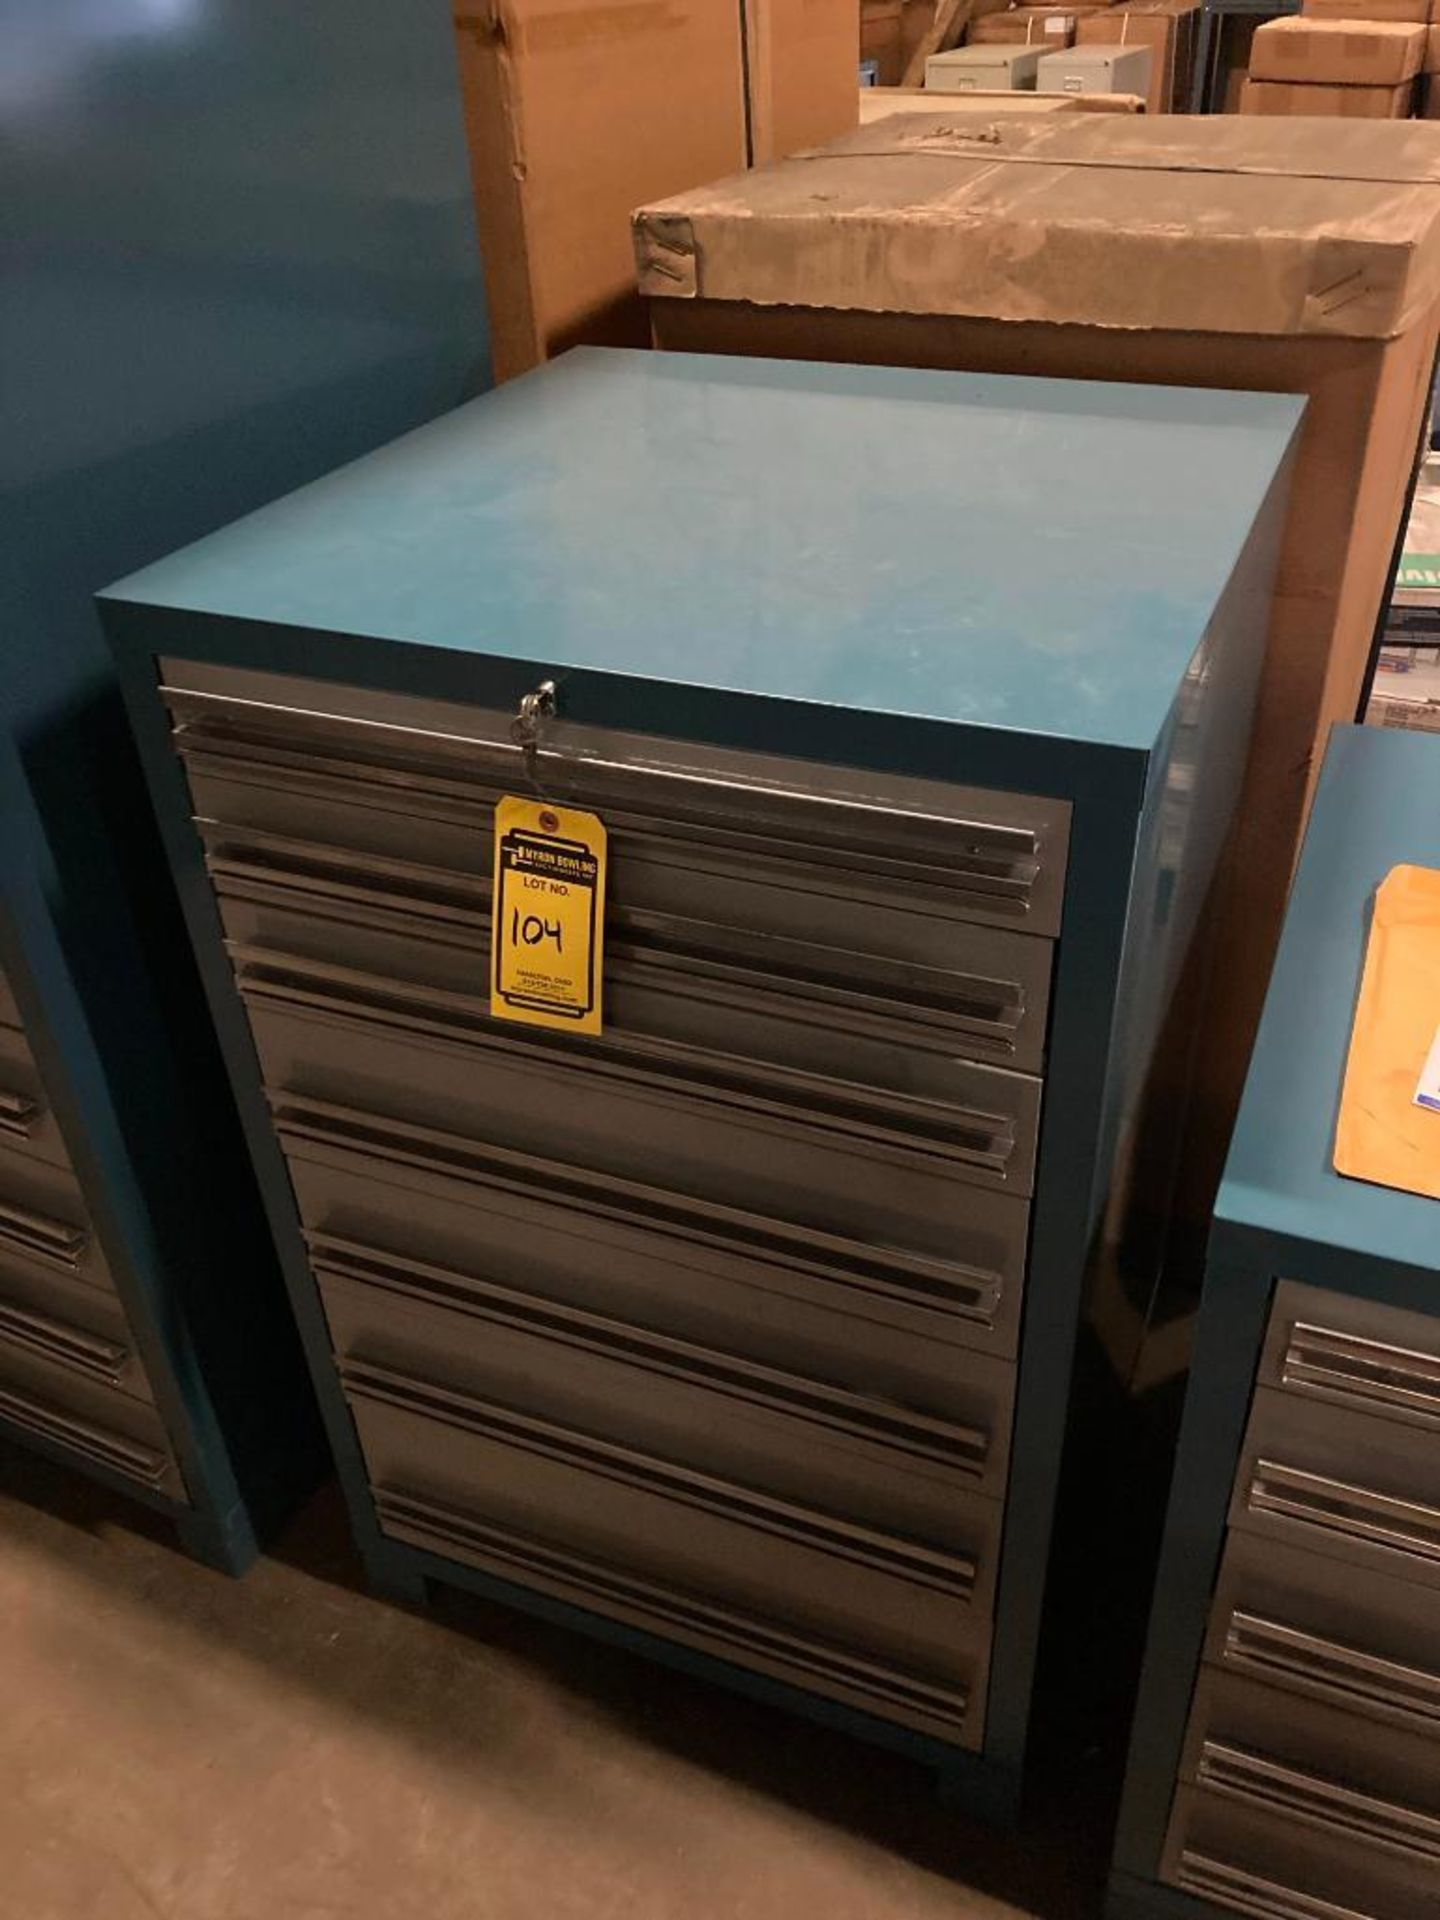 (2X) (NEW) EDSAL 7-DRAWER HEAVY DUTY MODULAR TOOLING CABINETS, 28.25''W X 44.5''H X 28.25''D, MODEL - Image 2 of 2